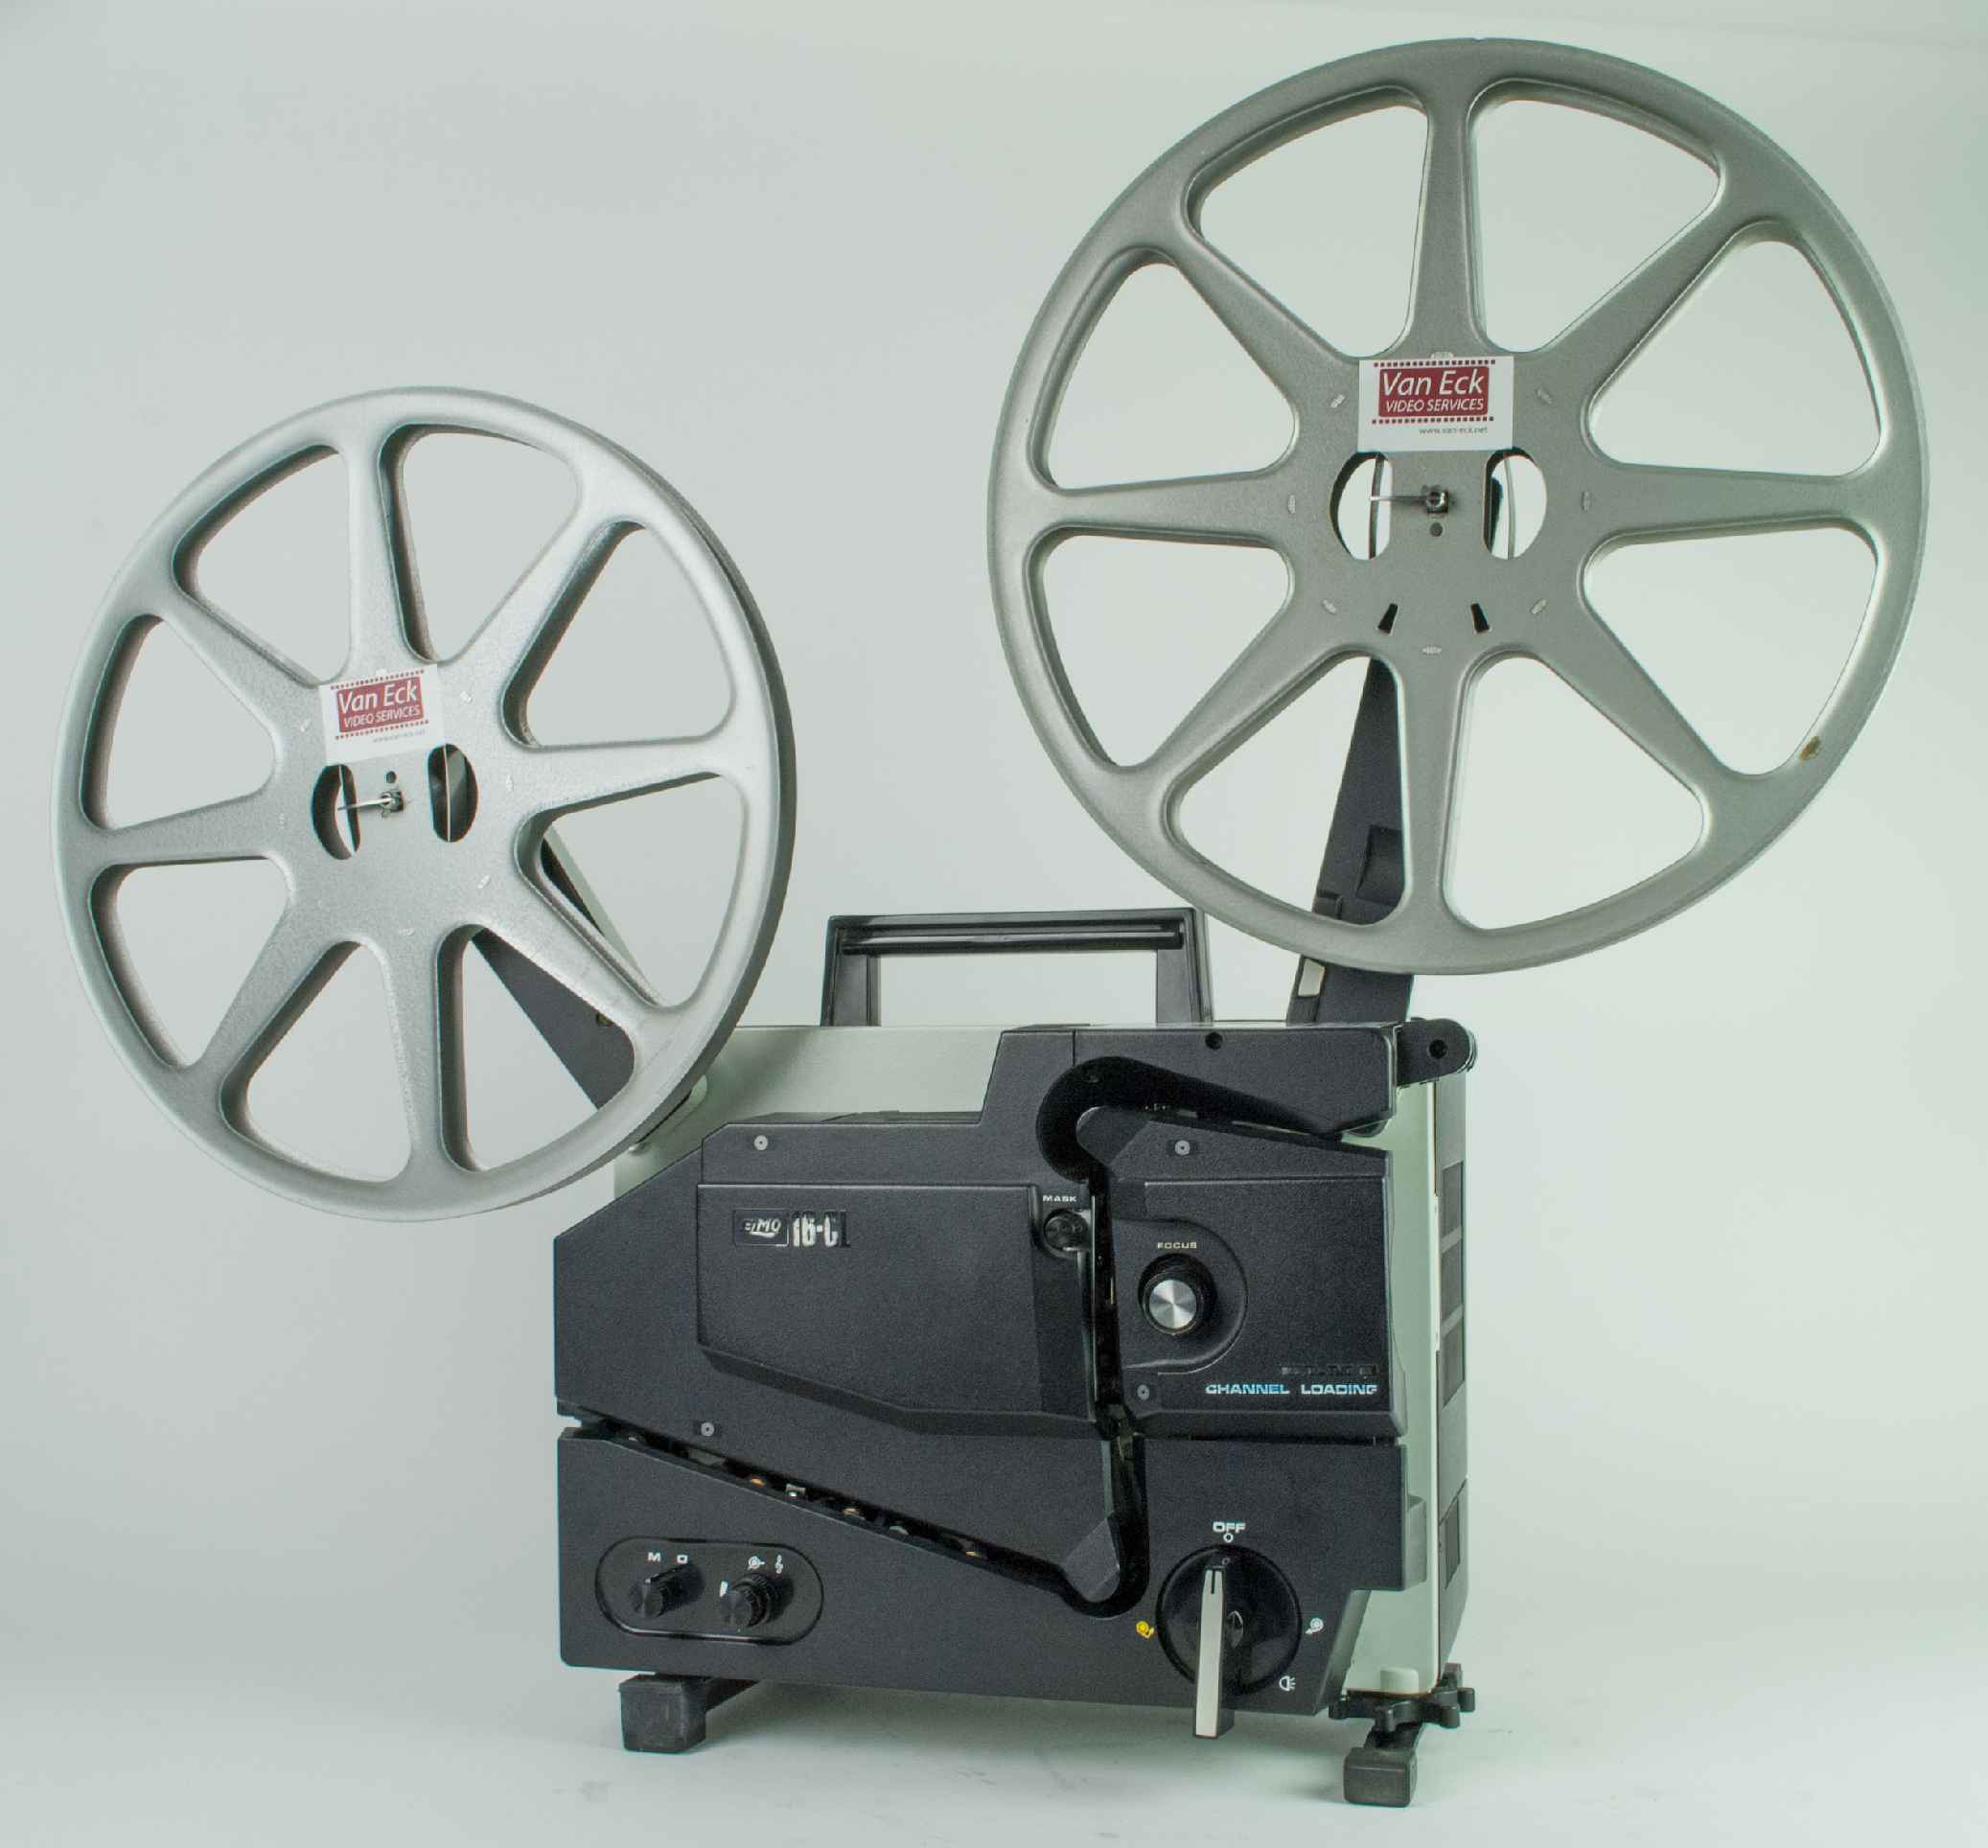 Elmo 16-CL film projector. For 16mm films